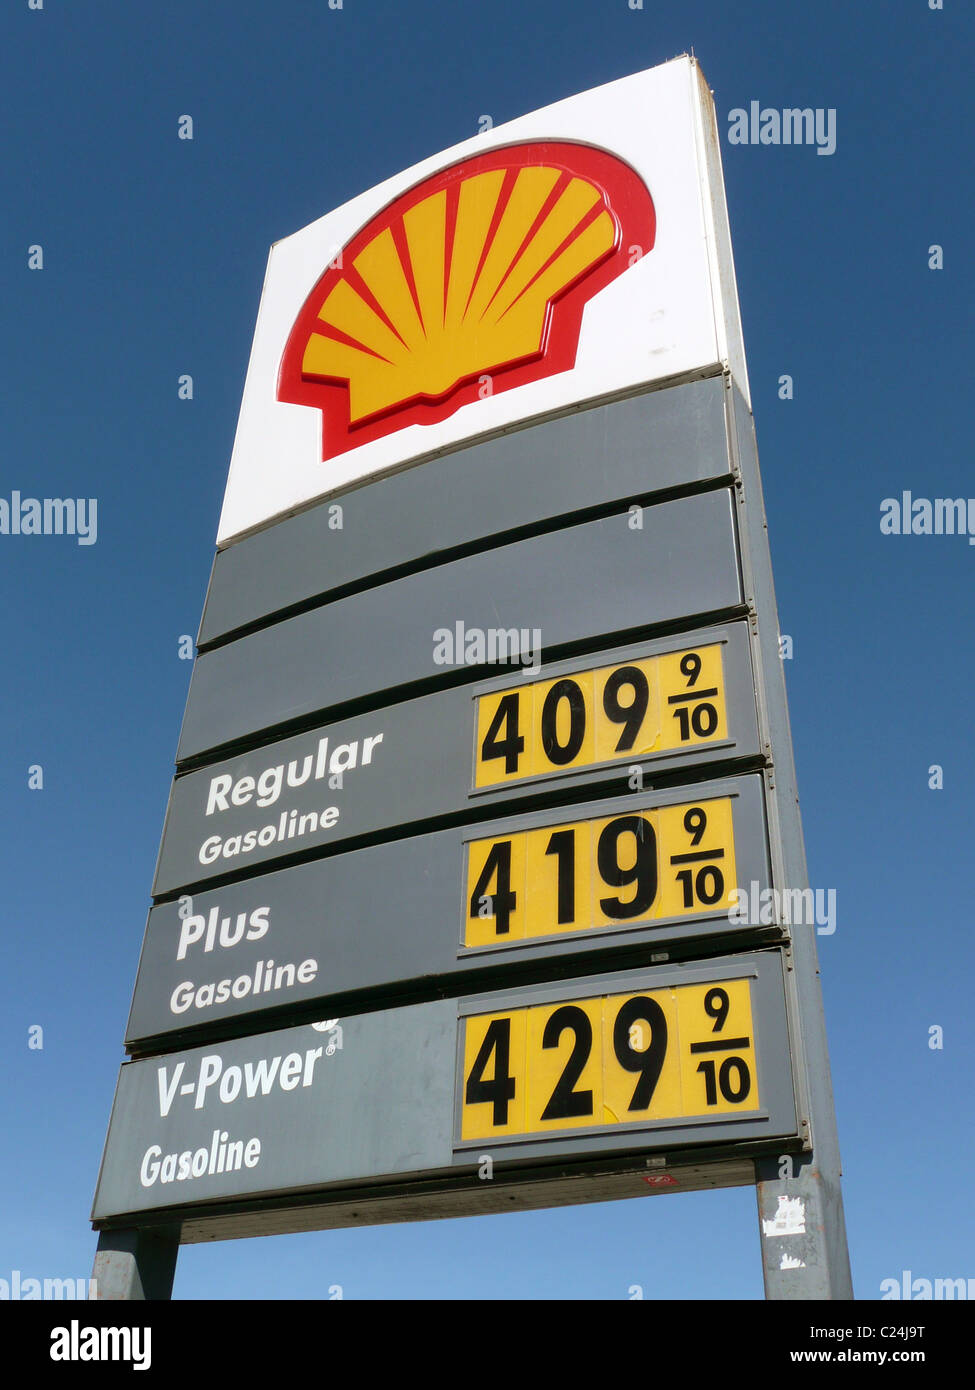 Gas Prices In California >> Shell gas station sign showing gasoline prices over $4 per gallon Stock Photo, Royalty Free ...